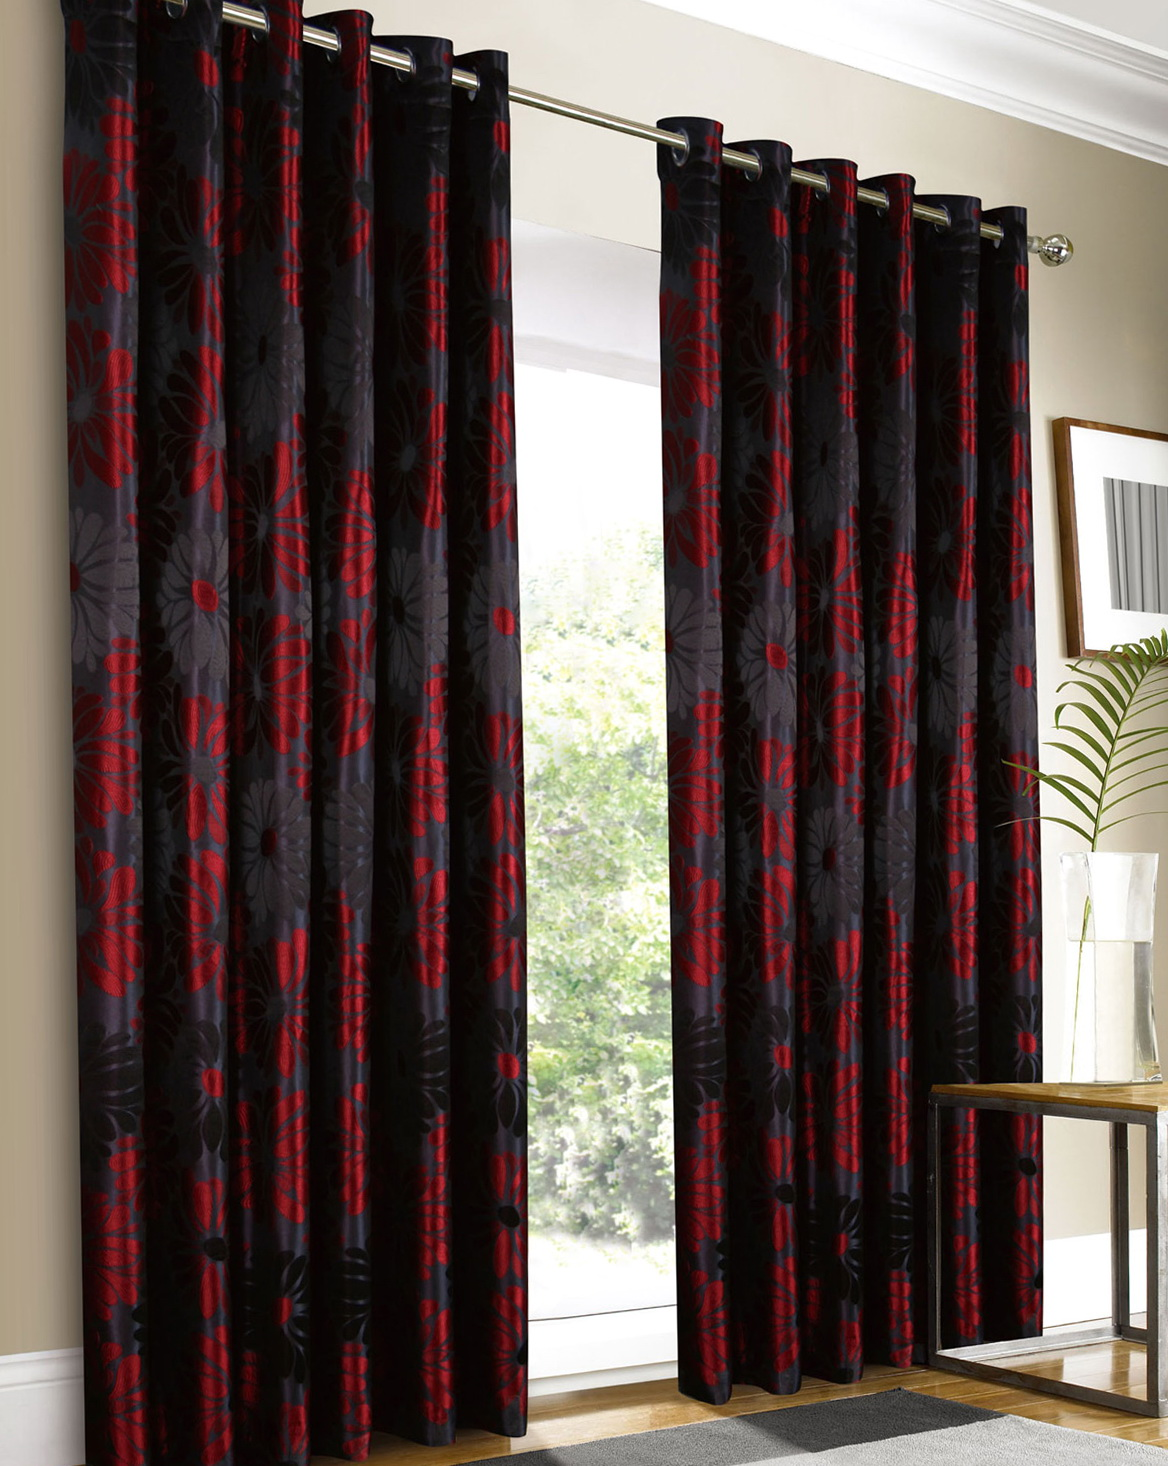 Black Red And Grey Curtains Home Design Ideas